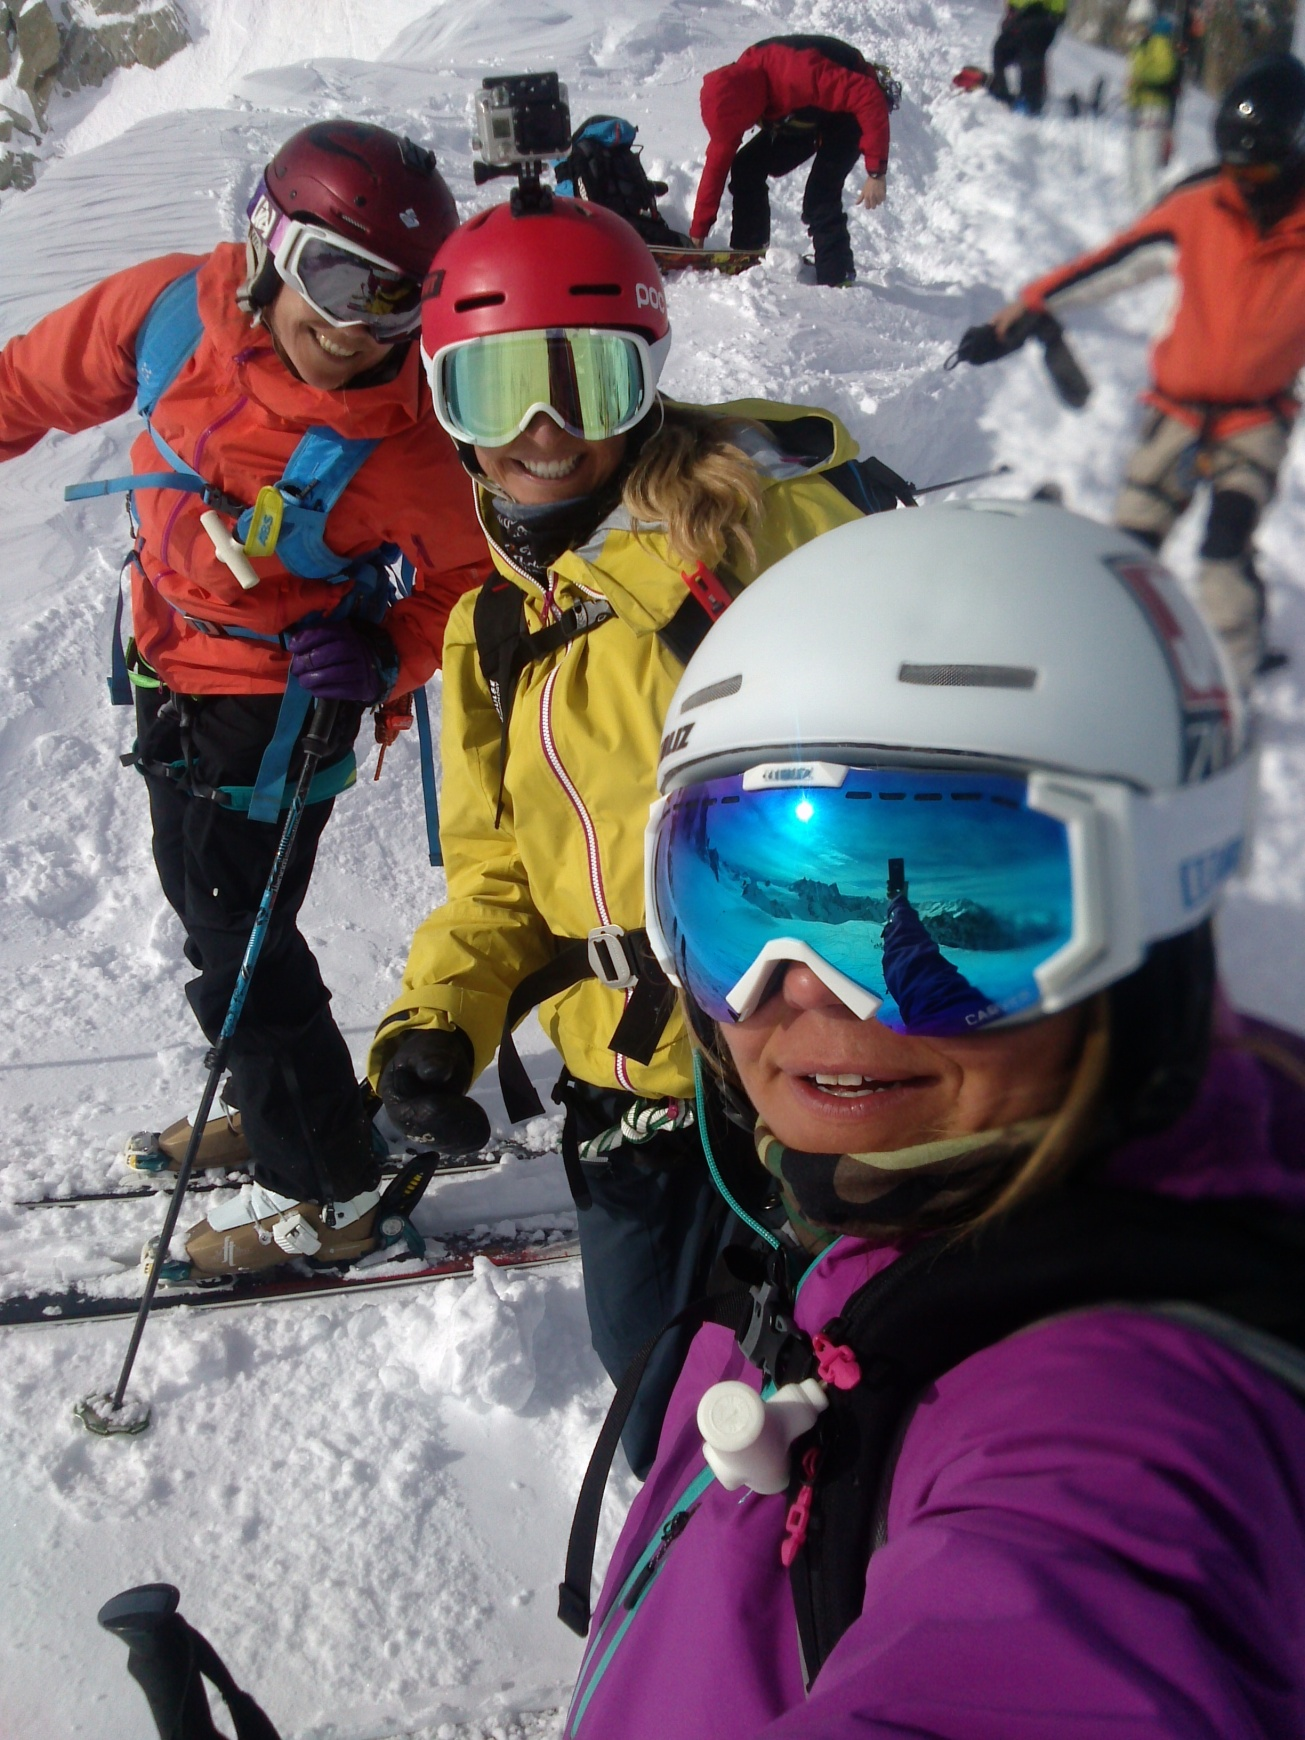 The Verbier Extreme got postponed a week, and I headed over to Chamonix to ski with these beautiful girls, Kristina Slinning and Tone Jersin Ansnes